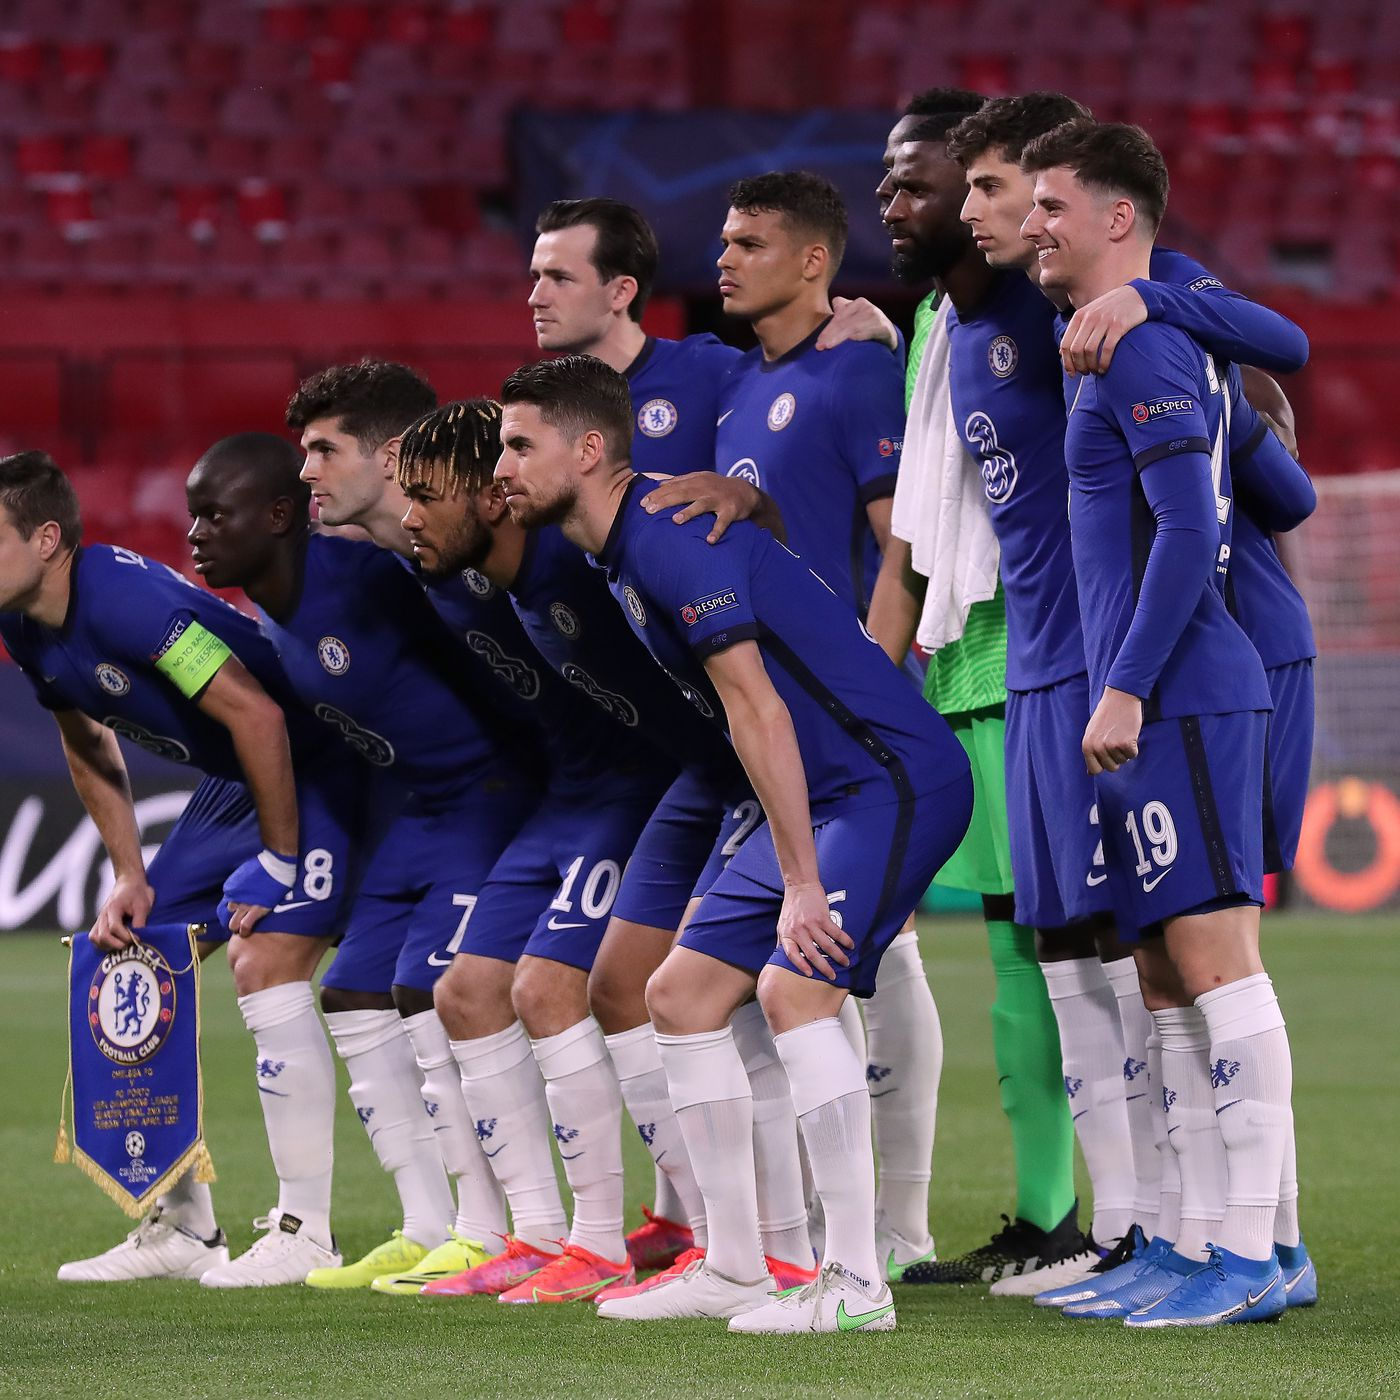 Chelsea Fans Preferred Lineup Against Manchester City No Changes From Porto Match We Ain T Got No History